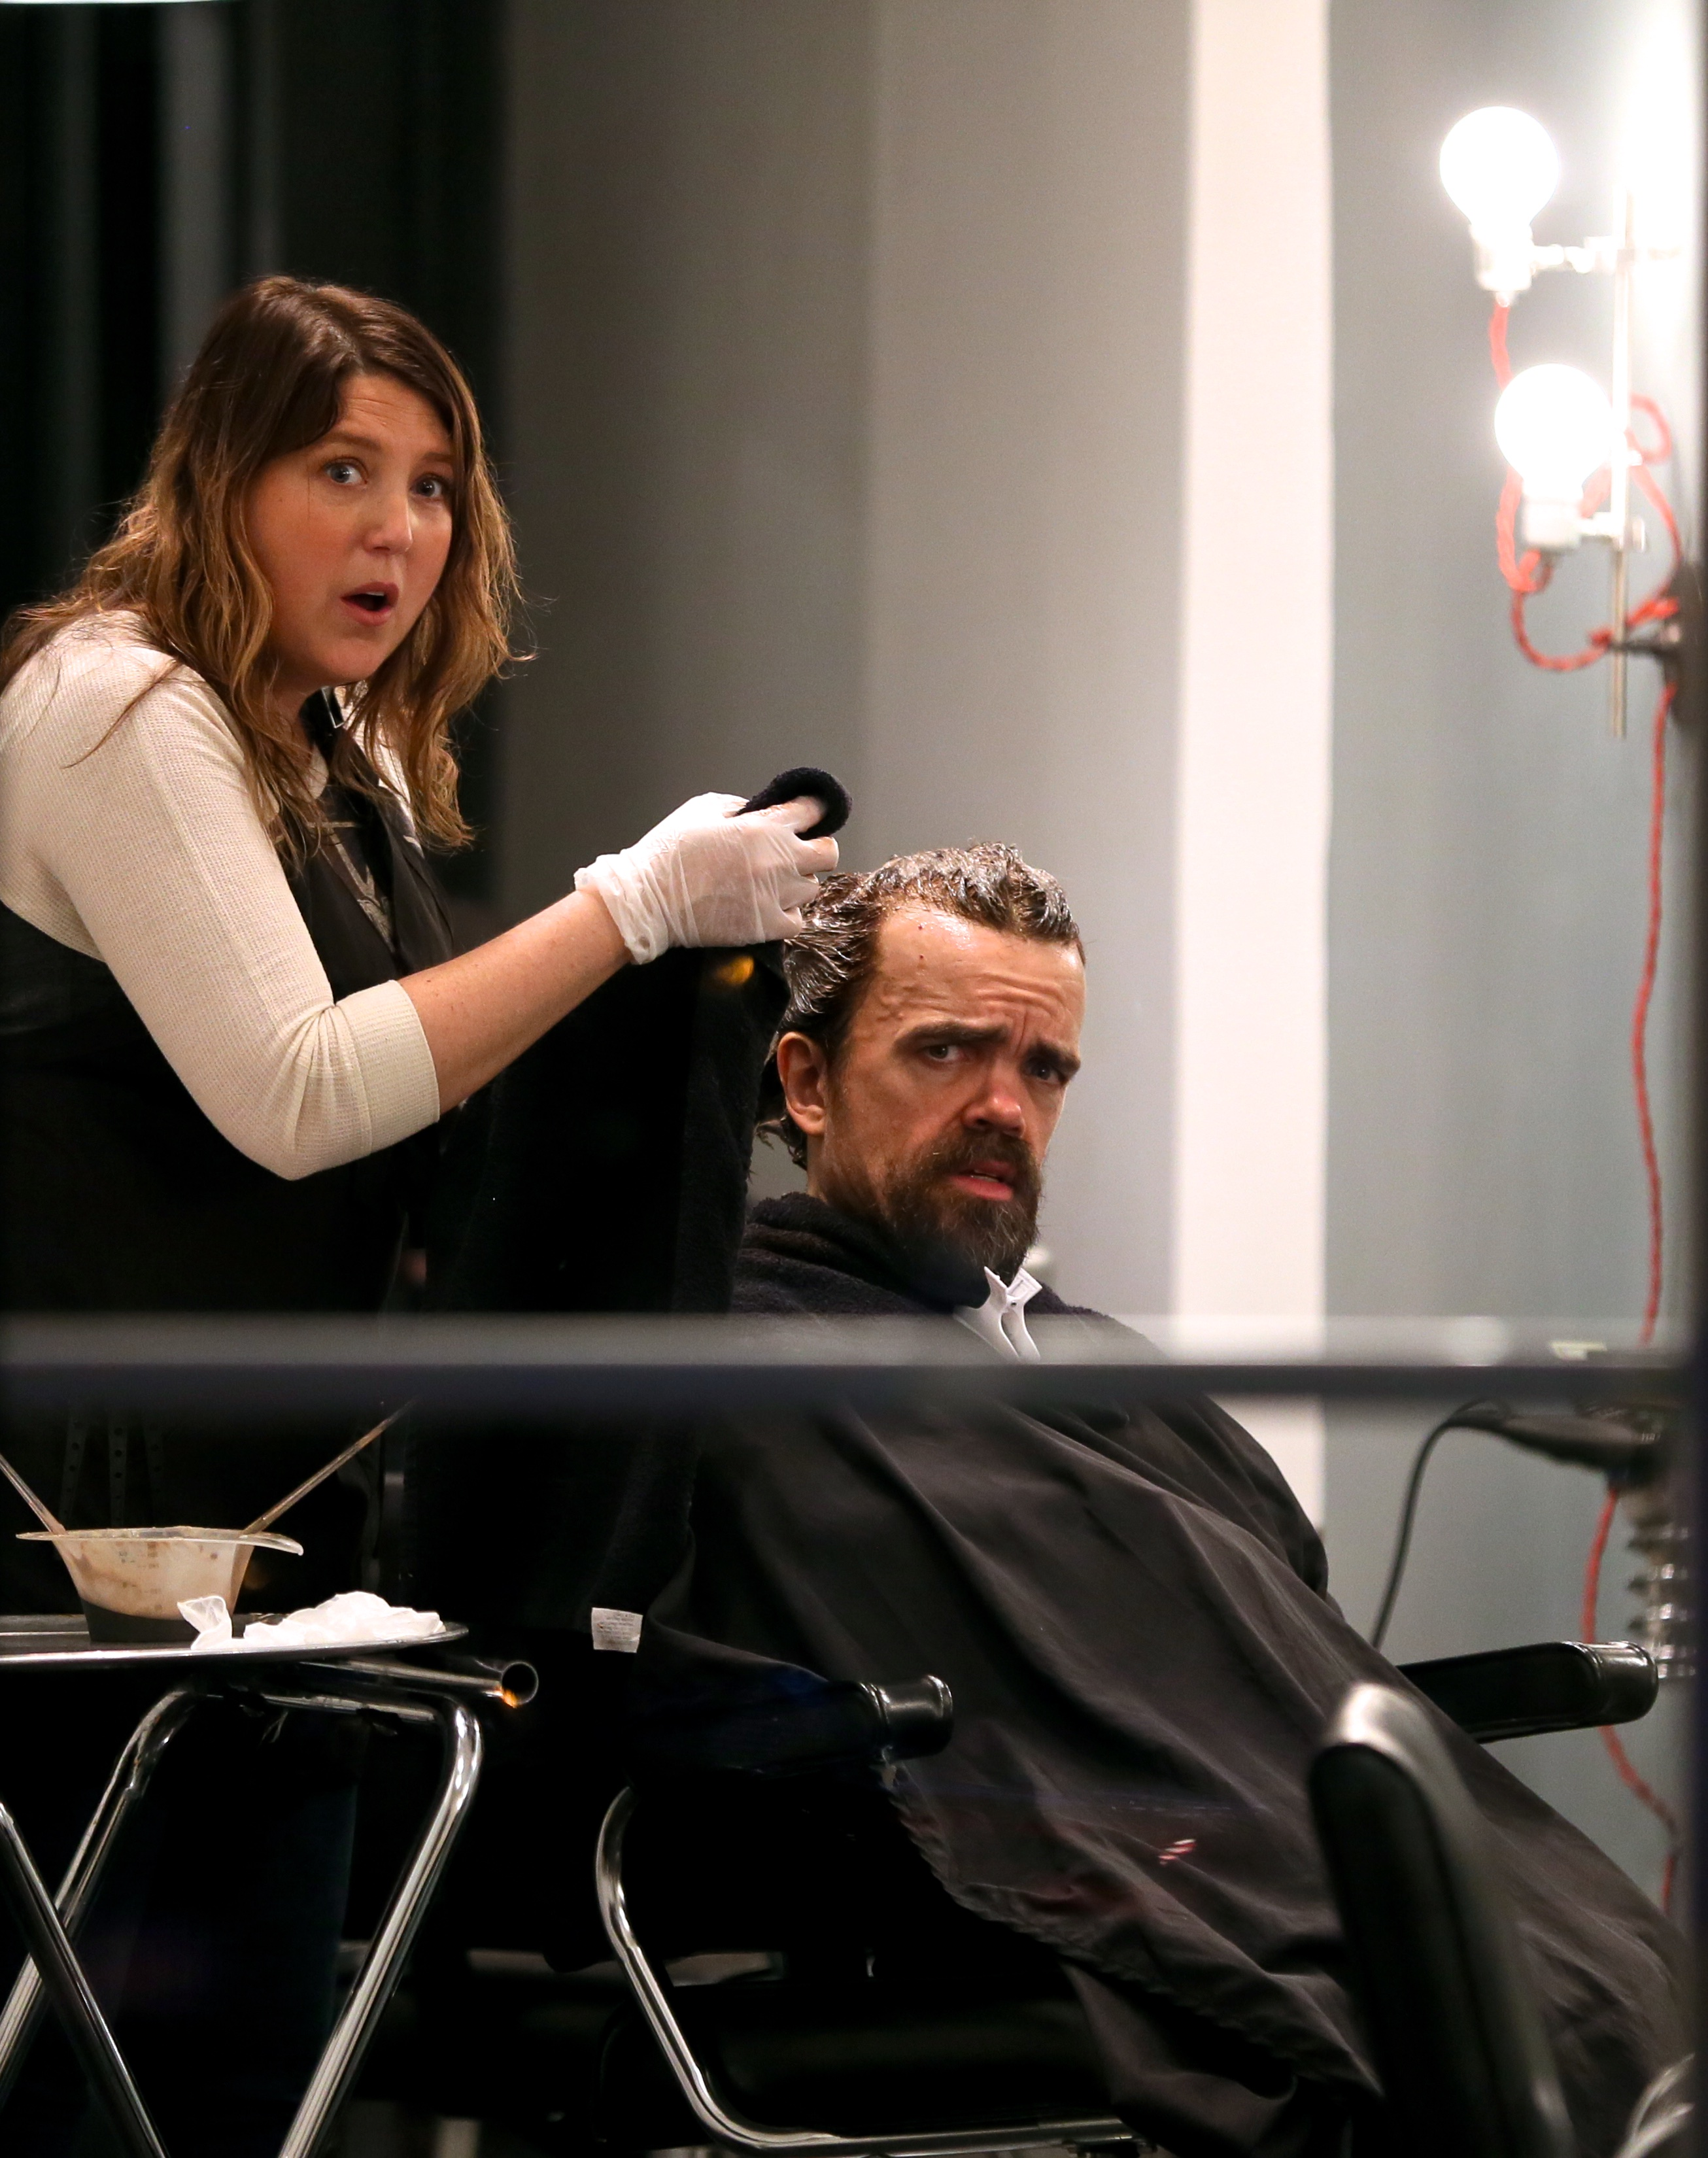 EXCLUSIVE Peter Dinklage Dyes His Hair A Fiery Red As He Emerges From Swanky NYC Salon